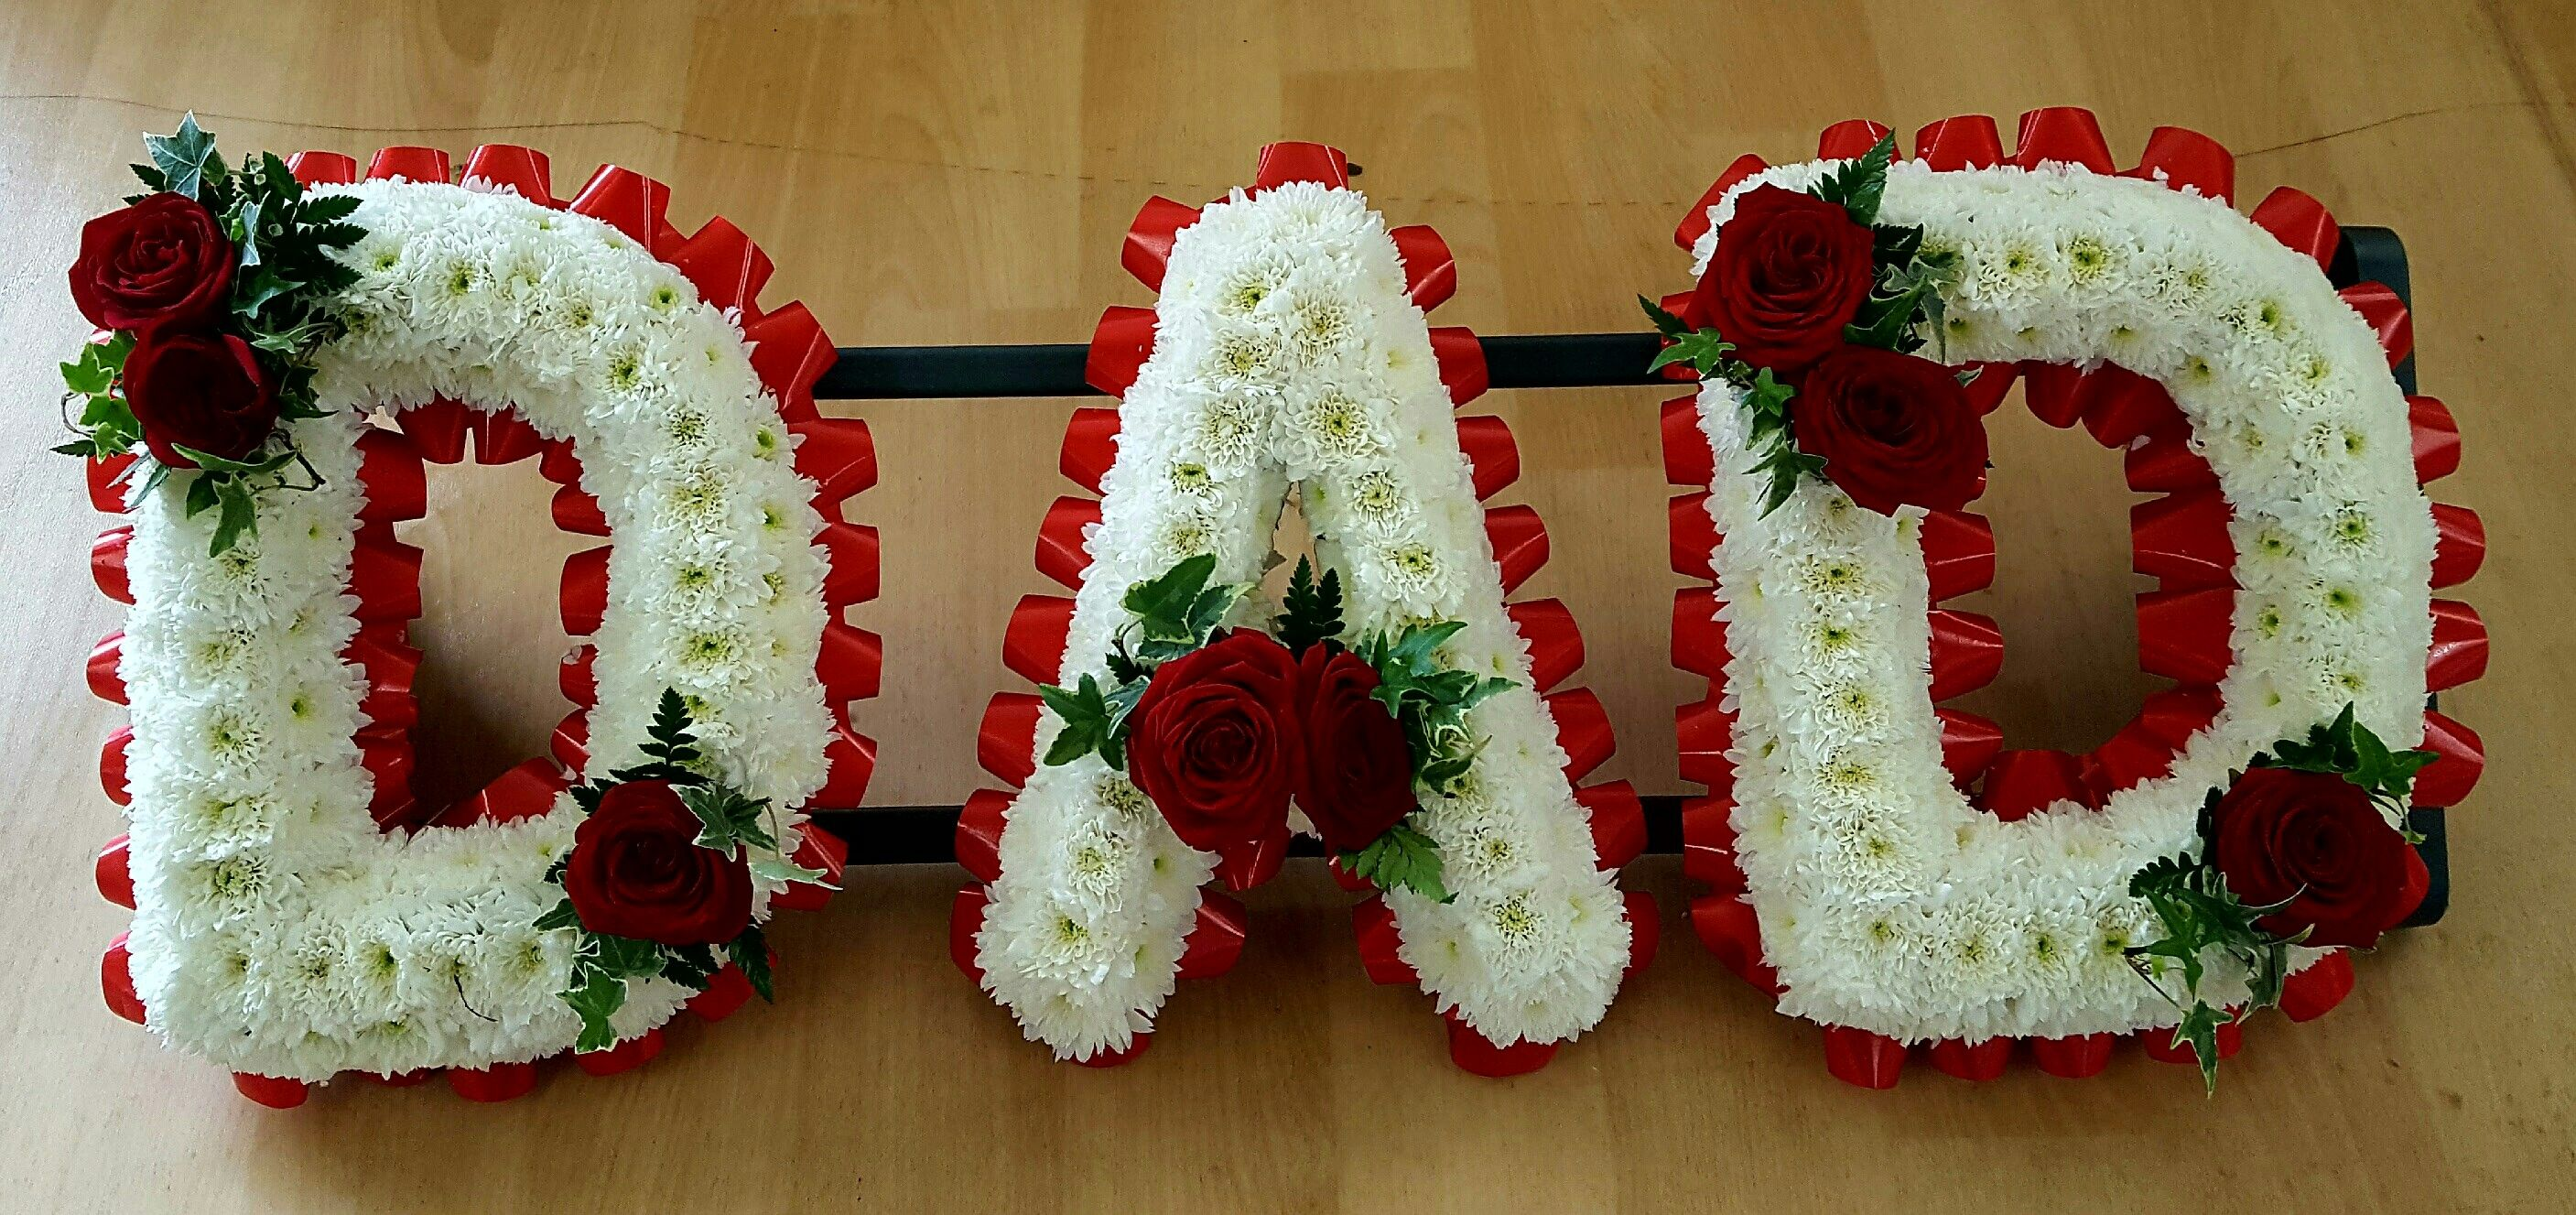 Dad funeral tribute by the country florist funeral tributes dad funeral tribute by the country florist izmirmasajfo Image collections